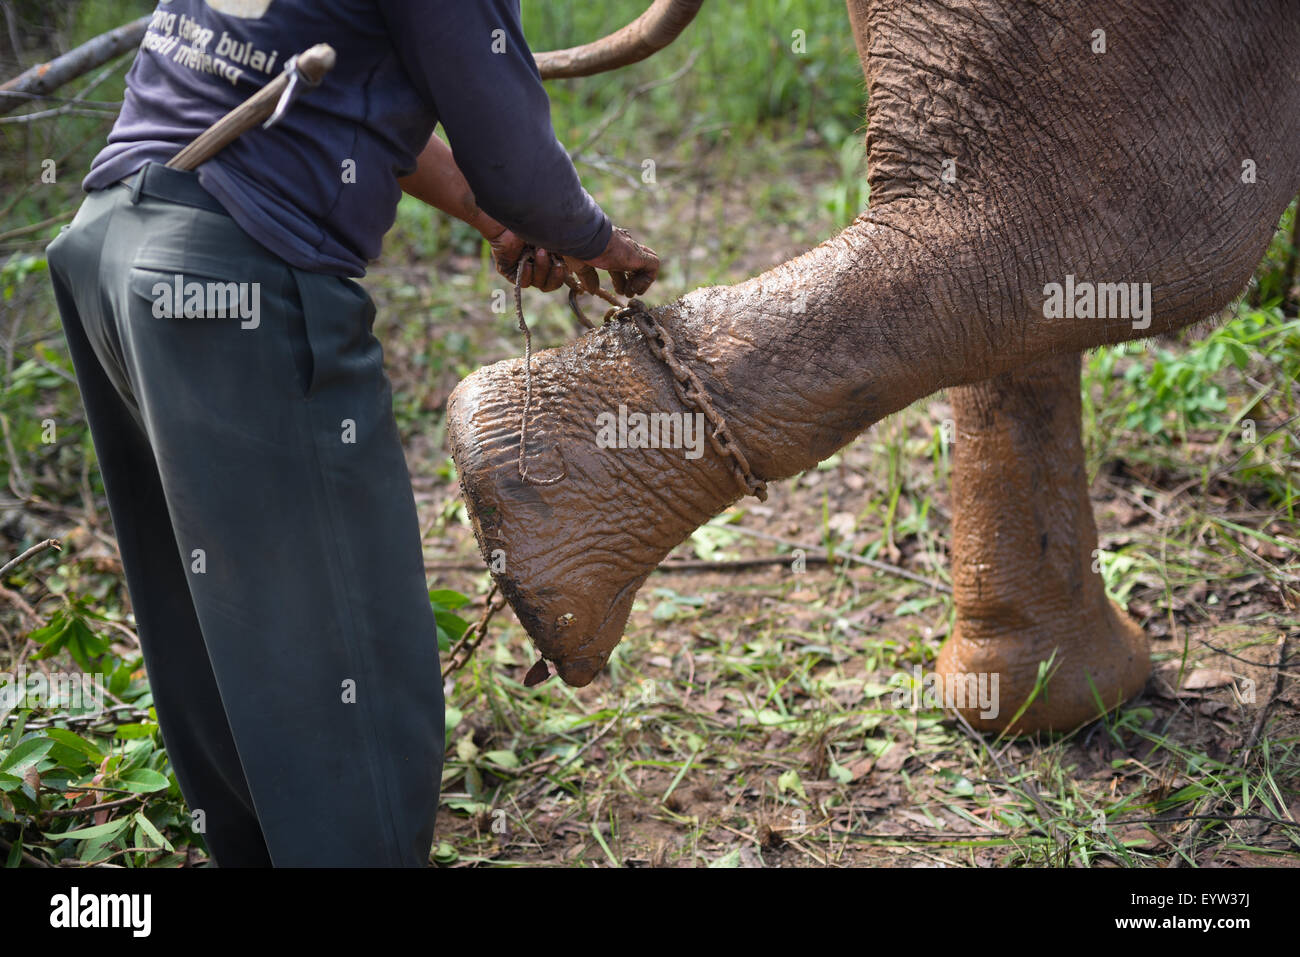 Mahout checking shackle chains on elephant feet. - Stock Image